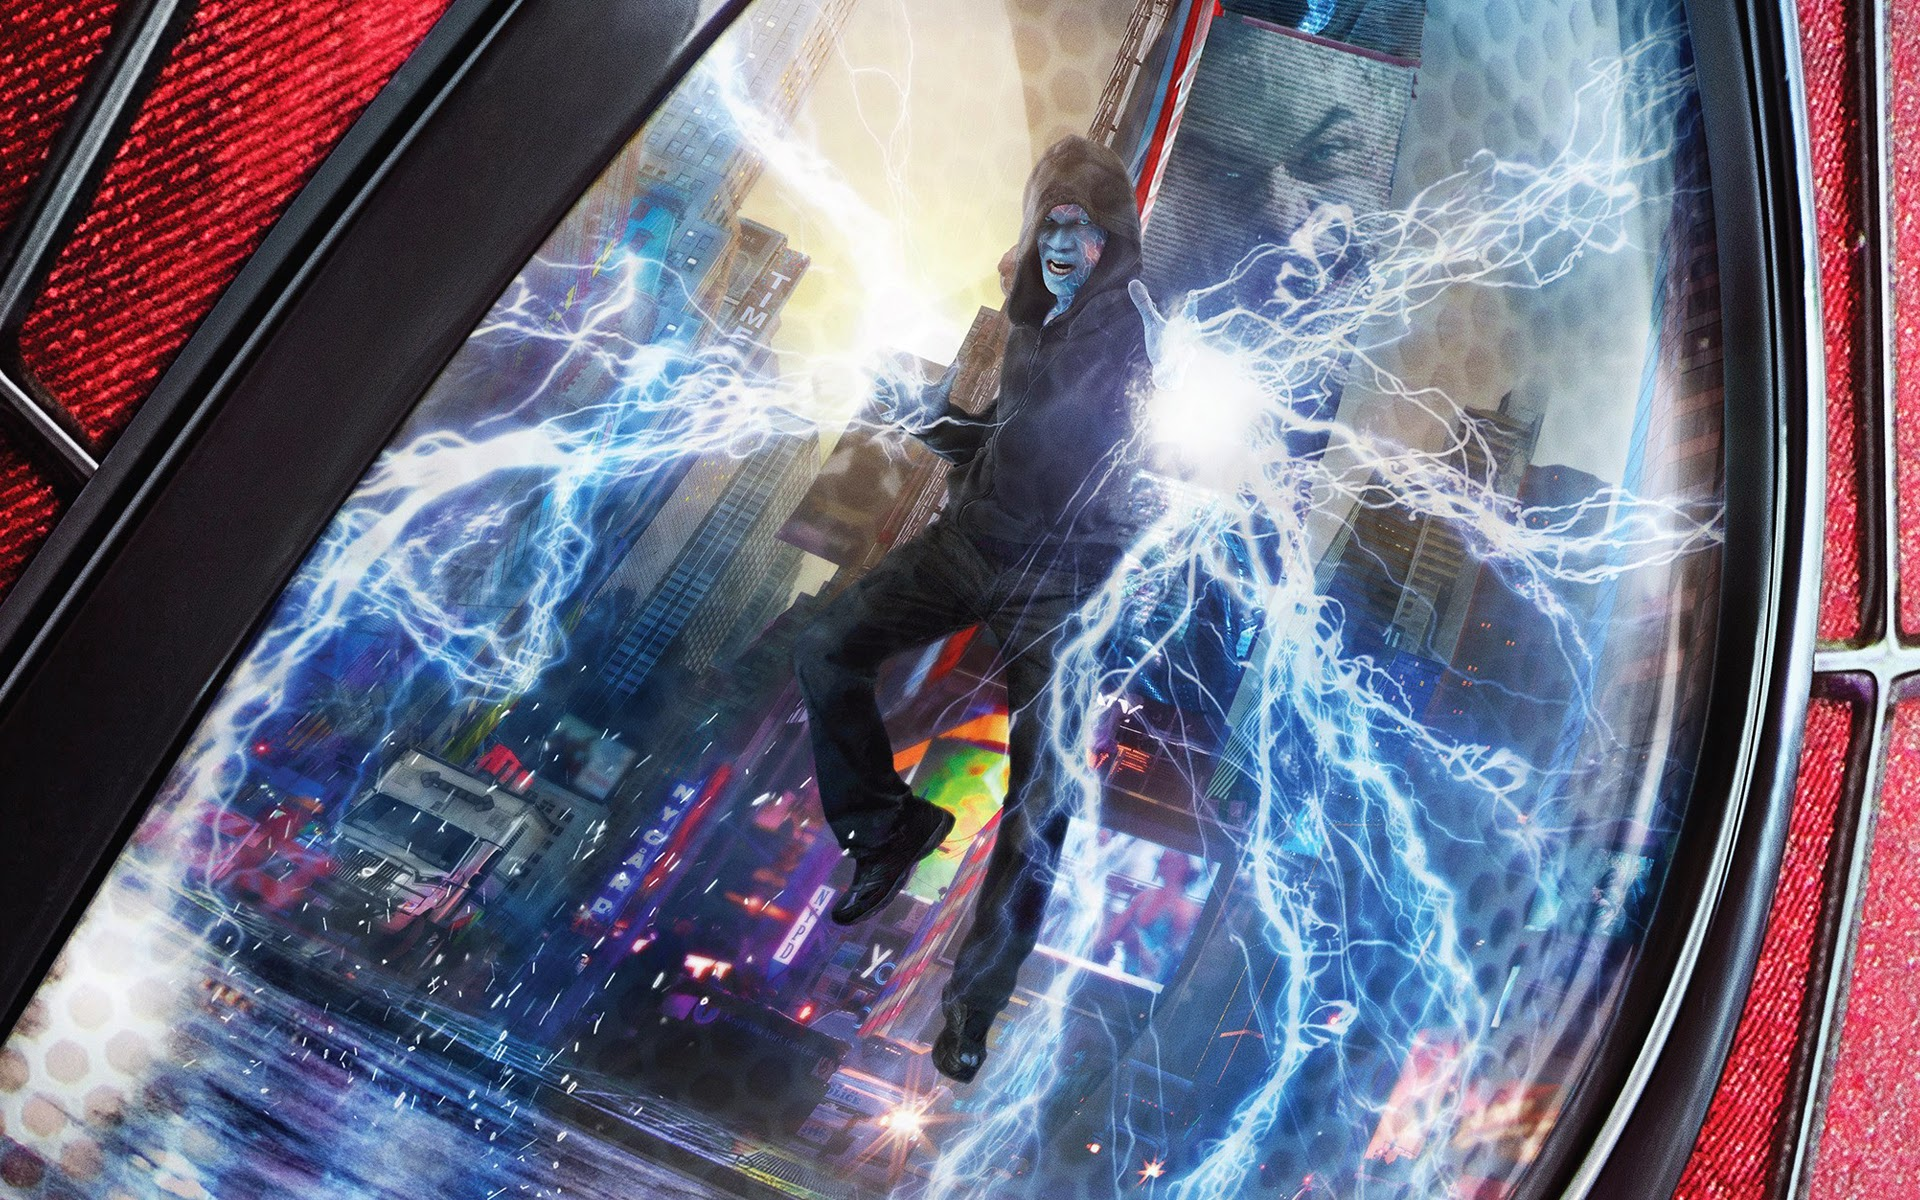 Electro Spider Man Wallpaper Movie Review: The Amaz...